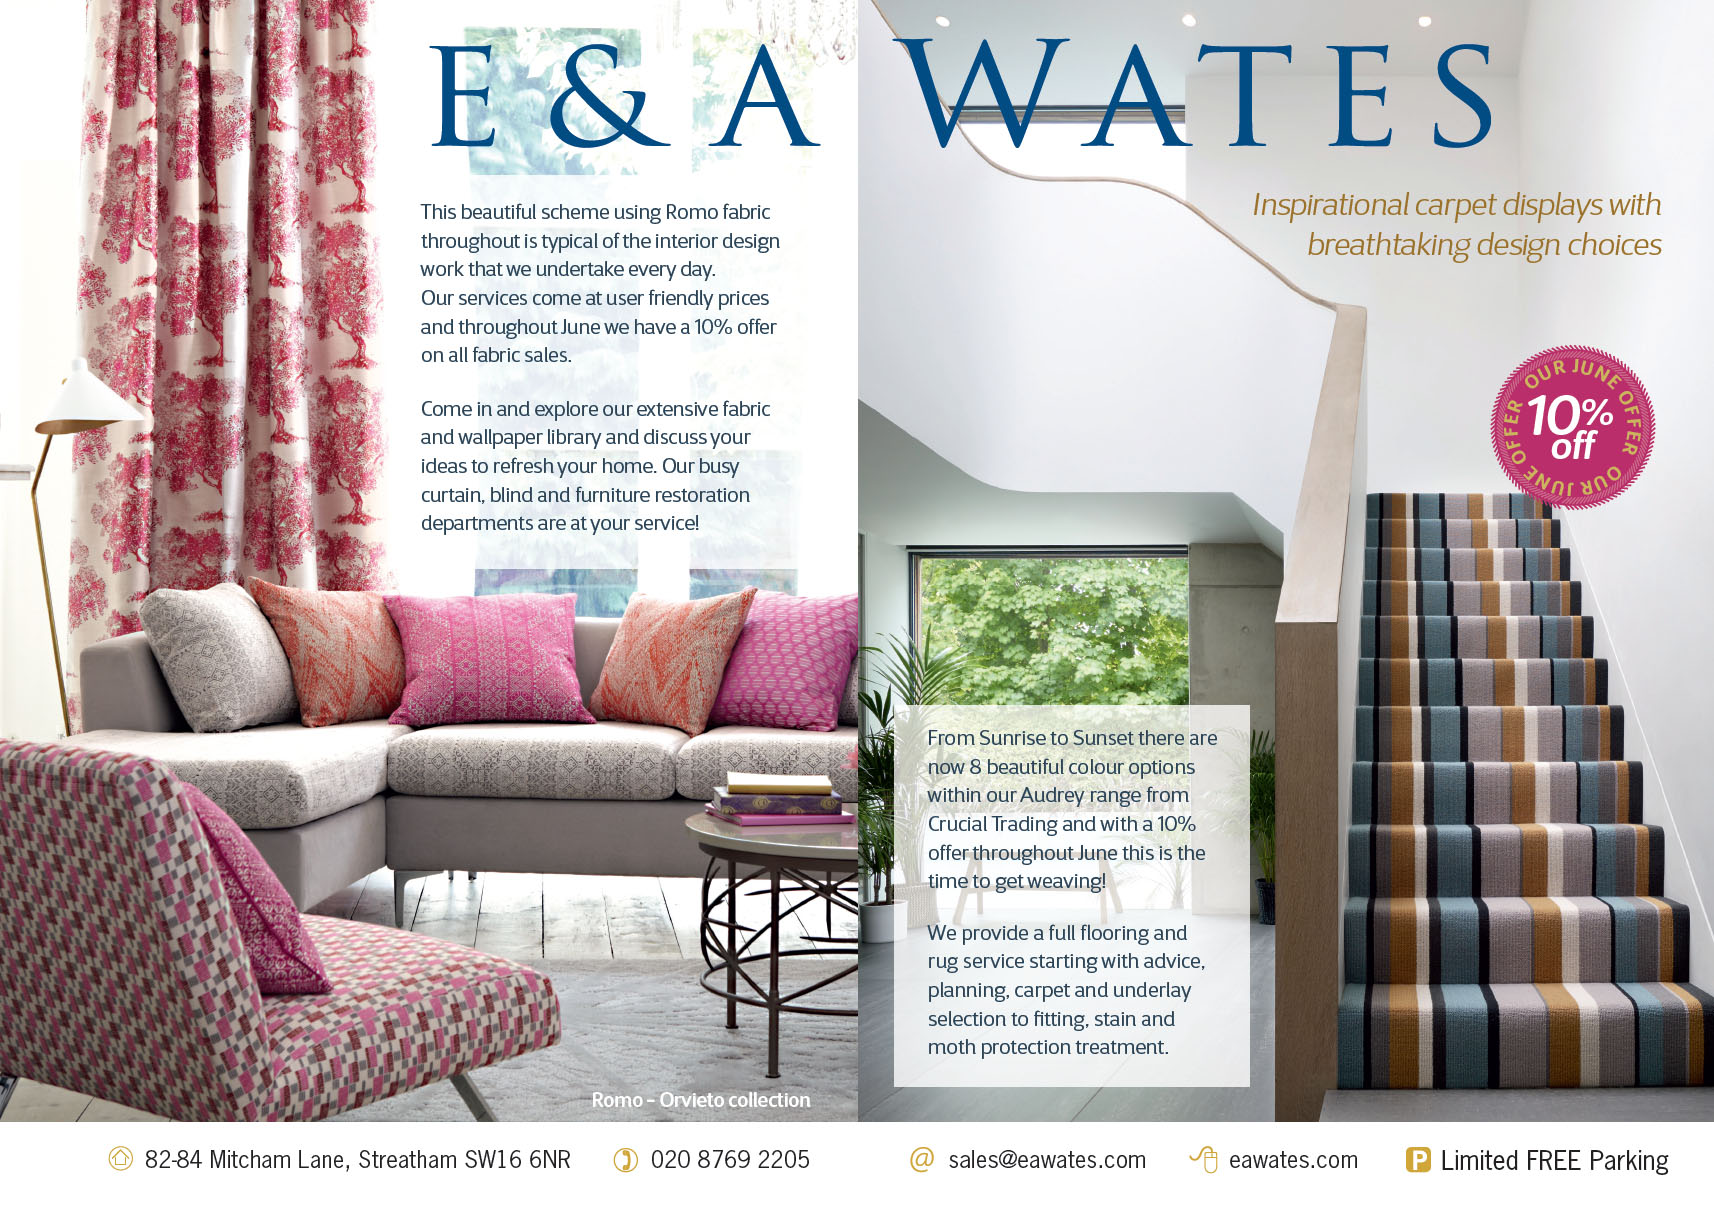 10% off fabric and carpet at E & A Wates in June 2016.